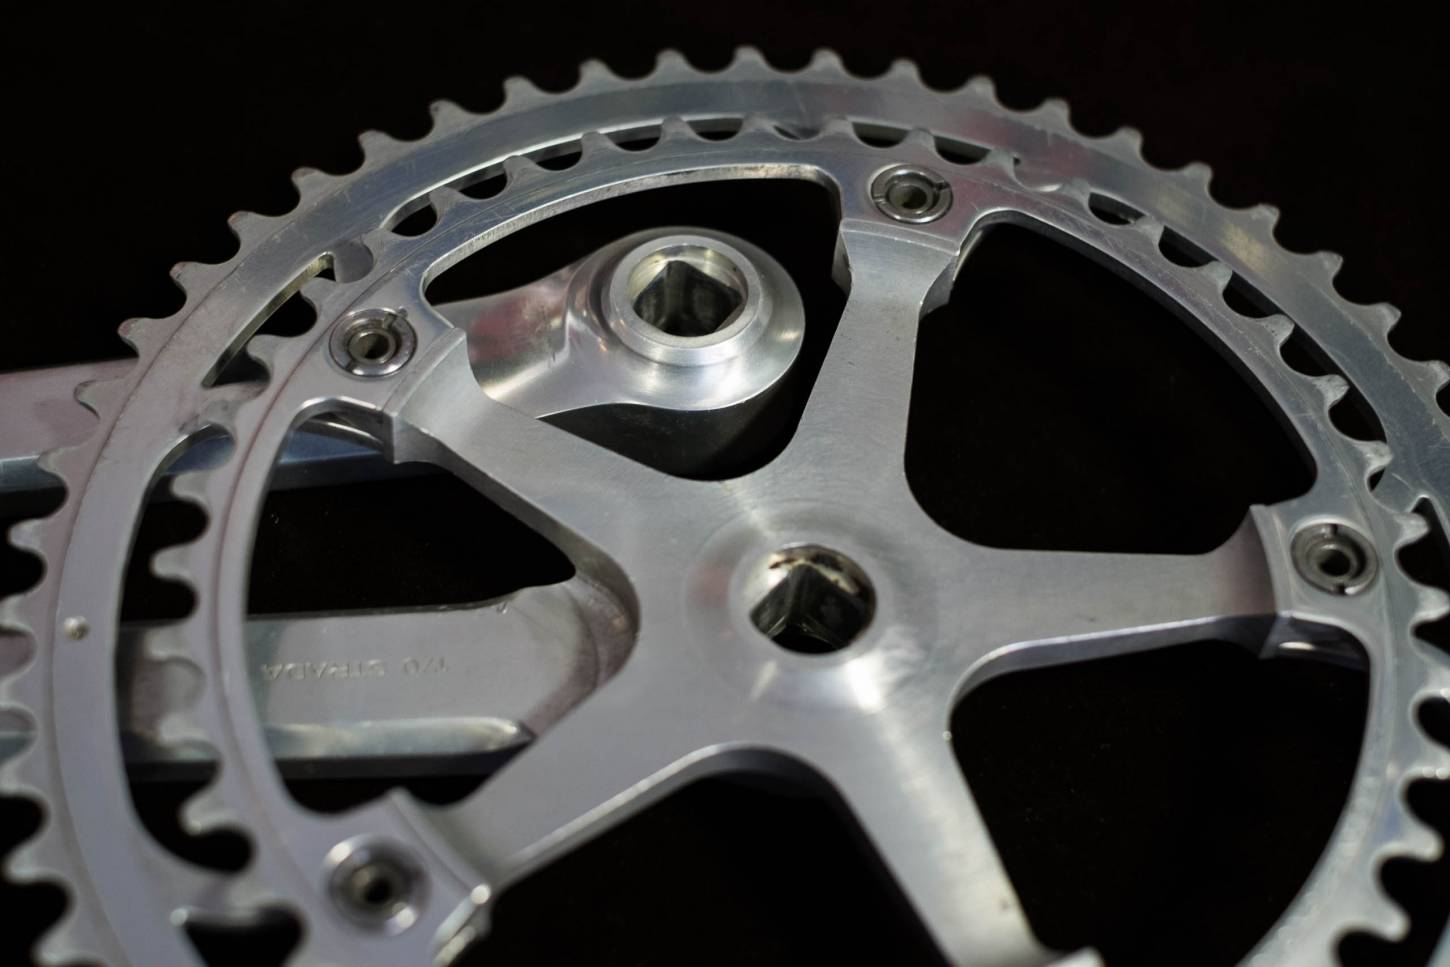 Campagnolo Super Record Strada crankset crankset with 53/42 teeth 144 bolt circle chainrings 170 m